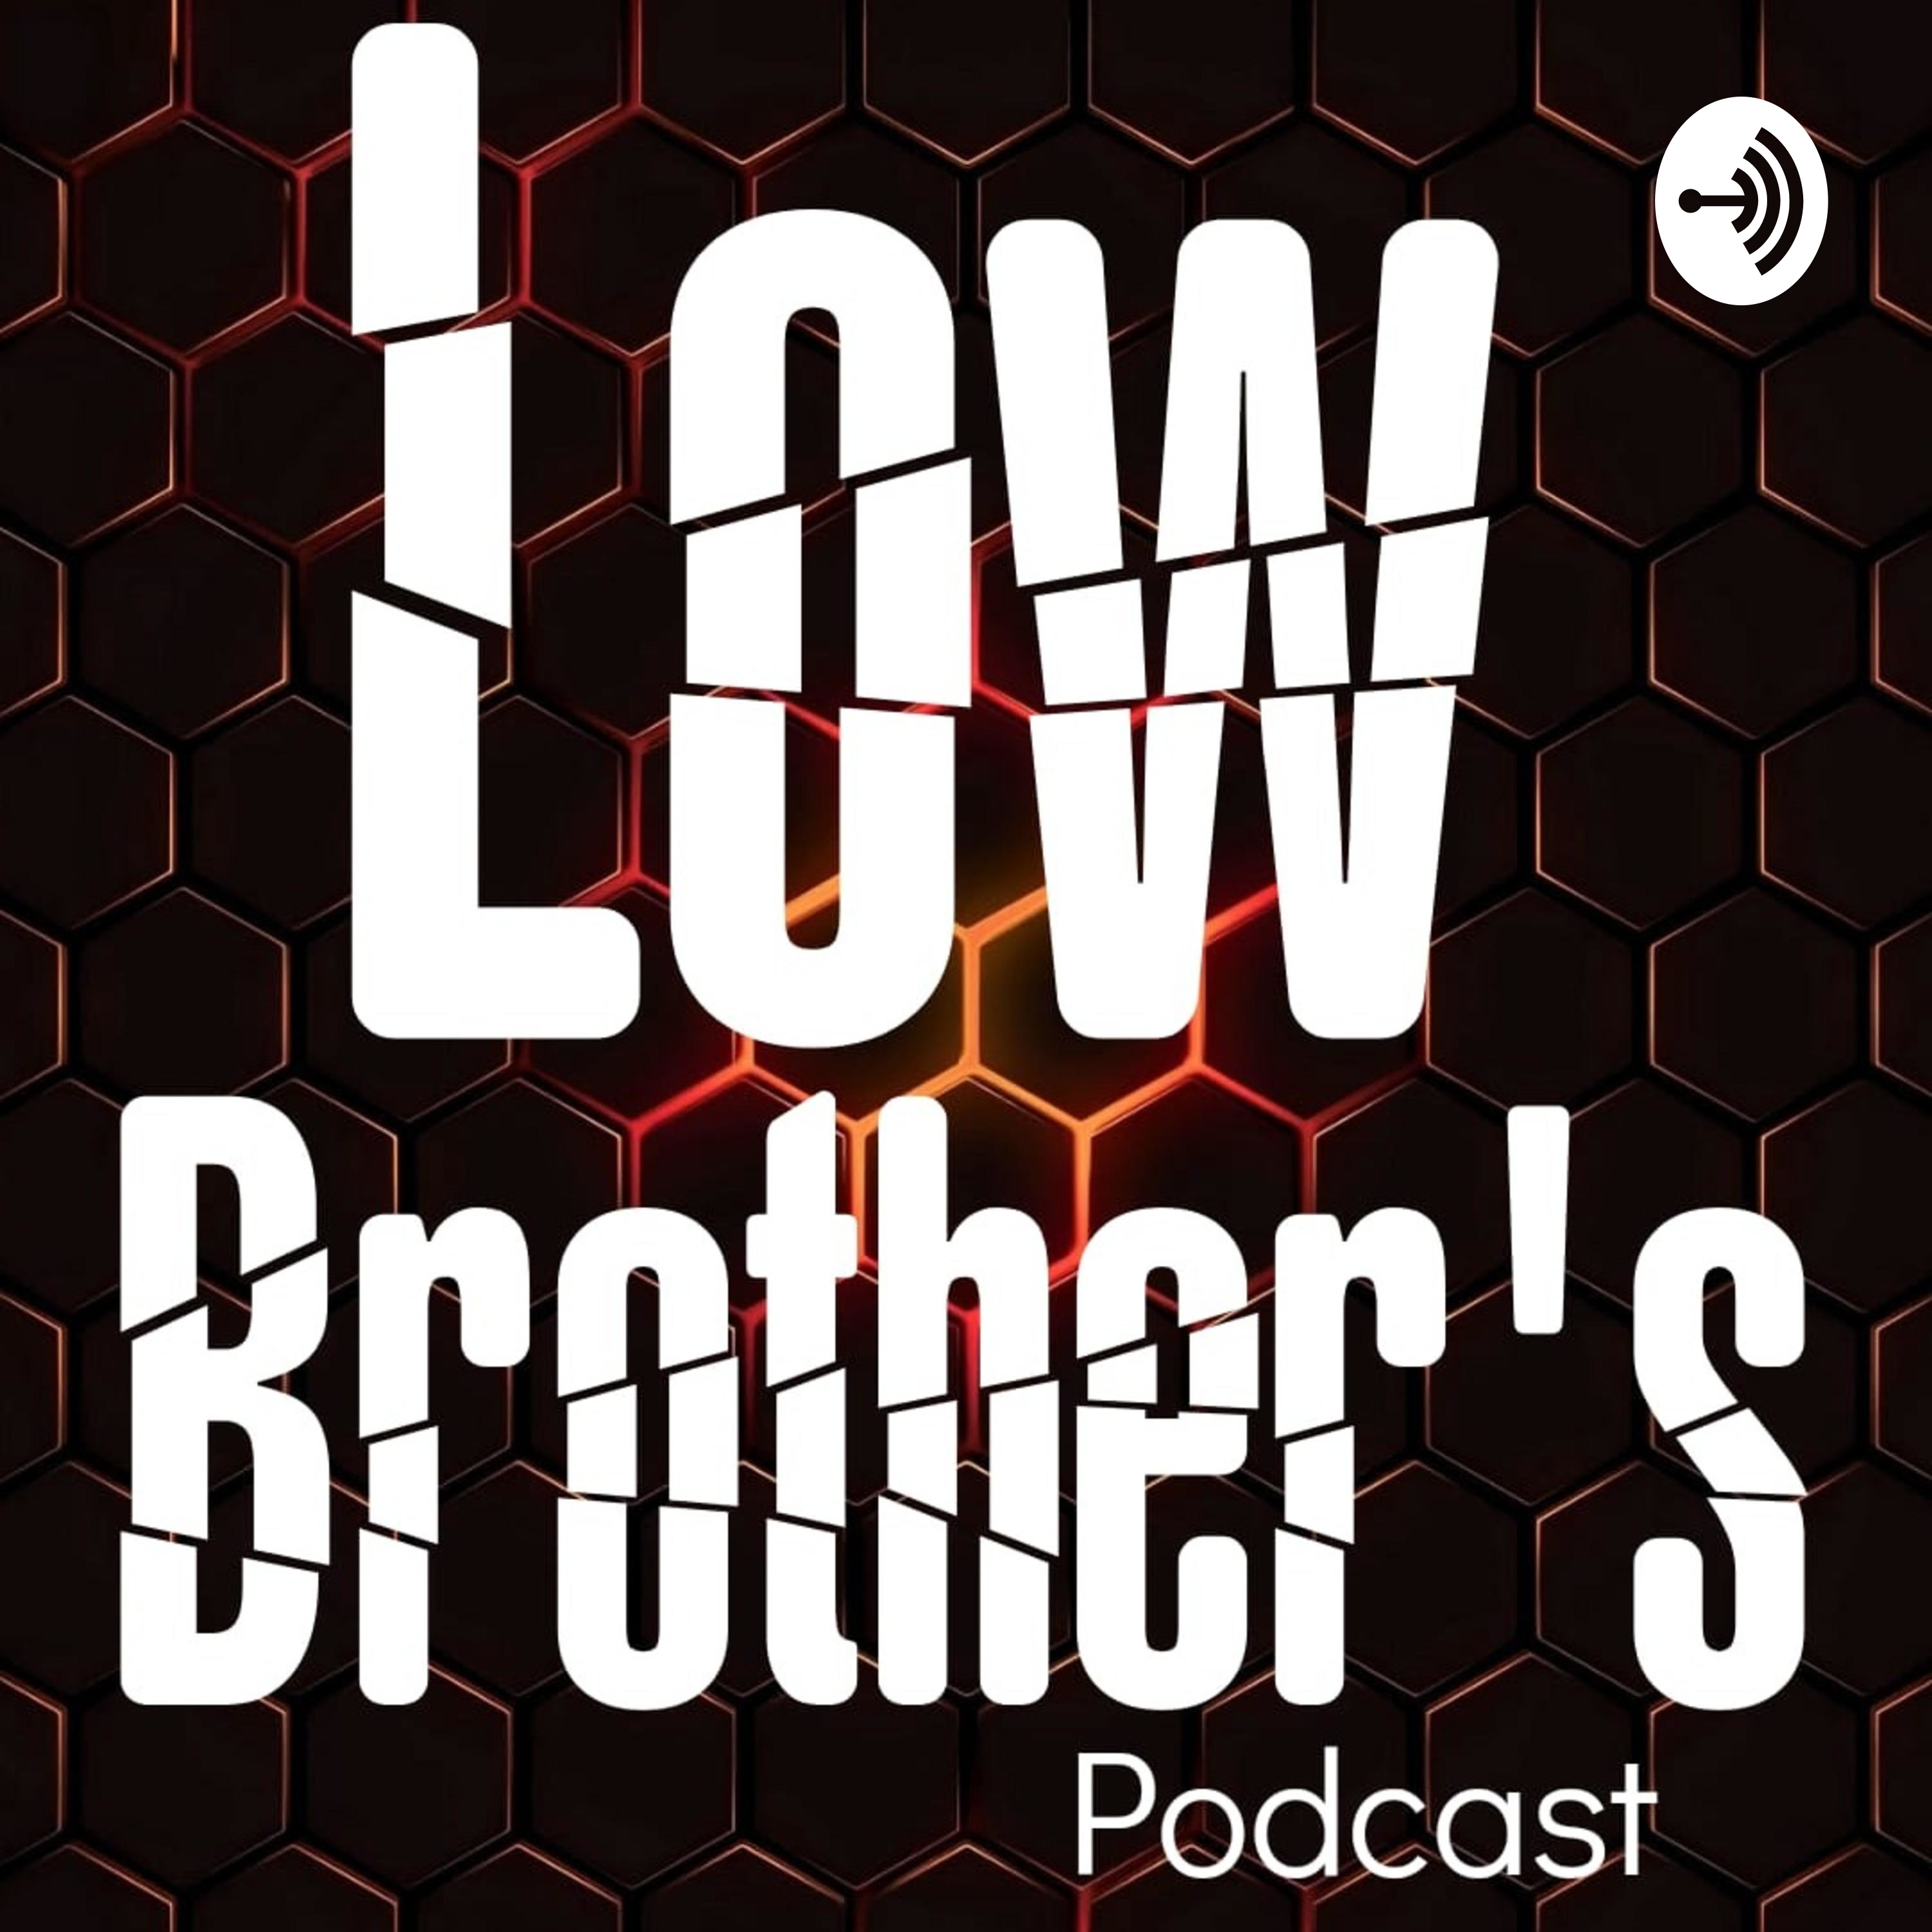 Low Brothers podcast